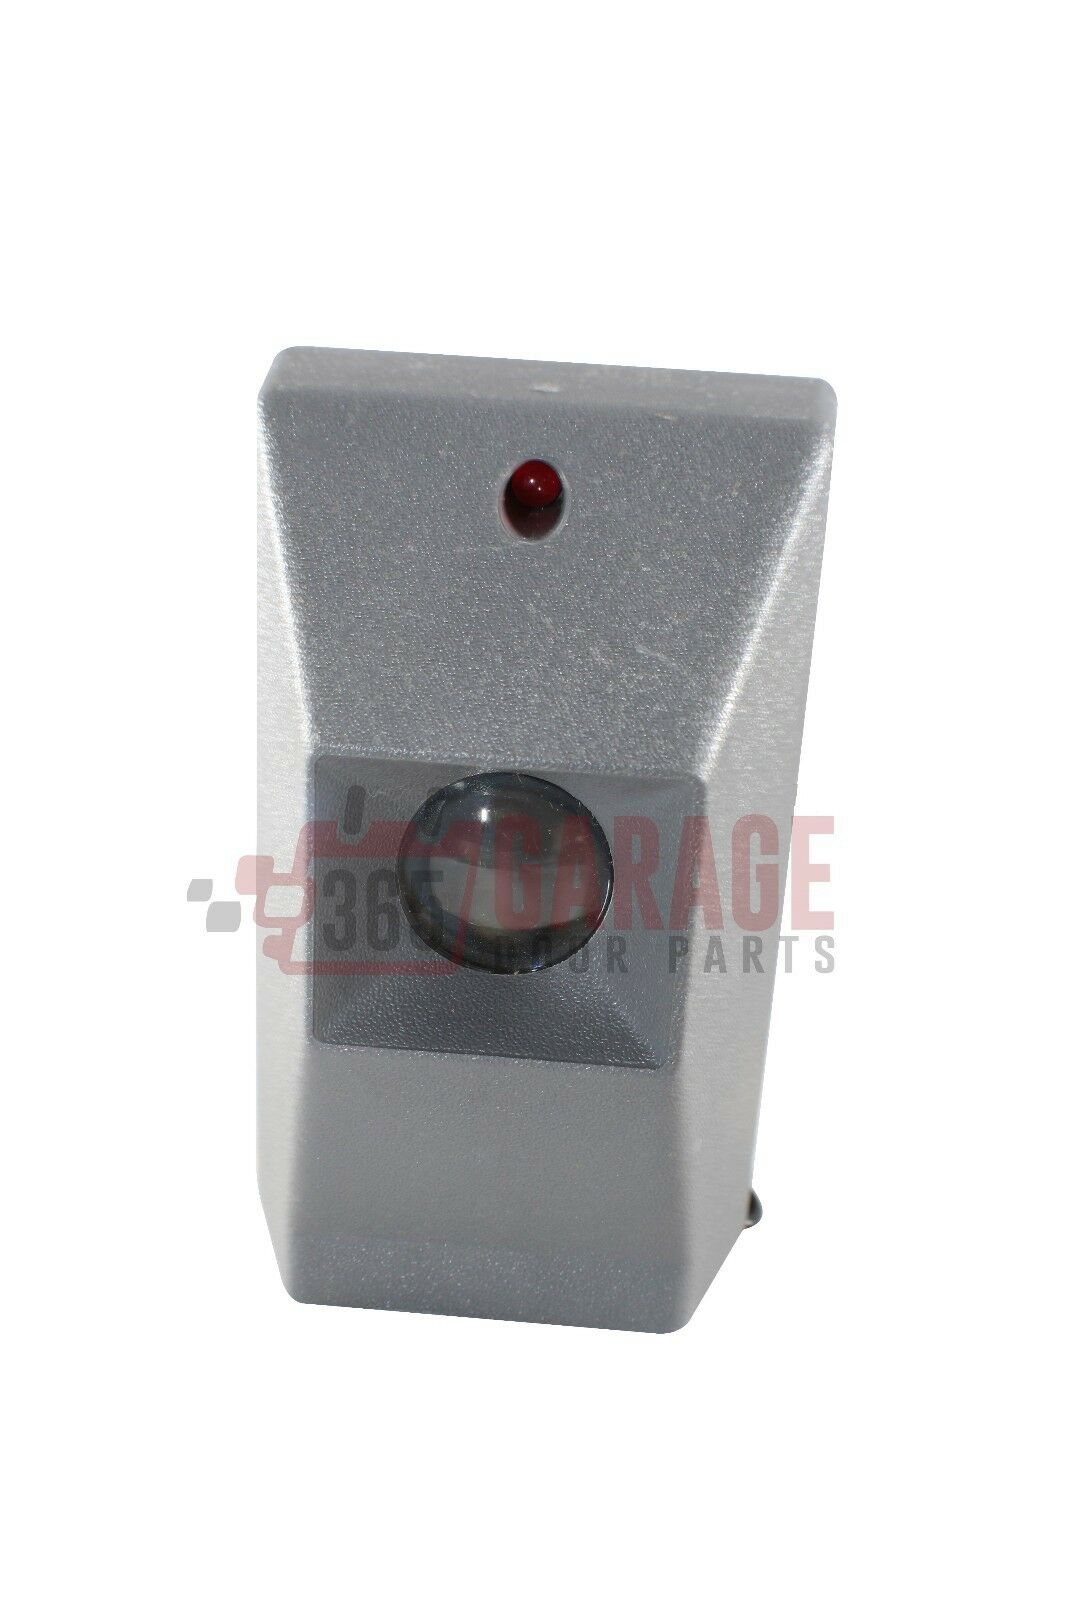 Digi Code Cr2149 Universal Garage Door Opener Safety Beam Sensor